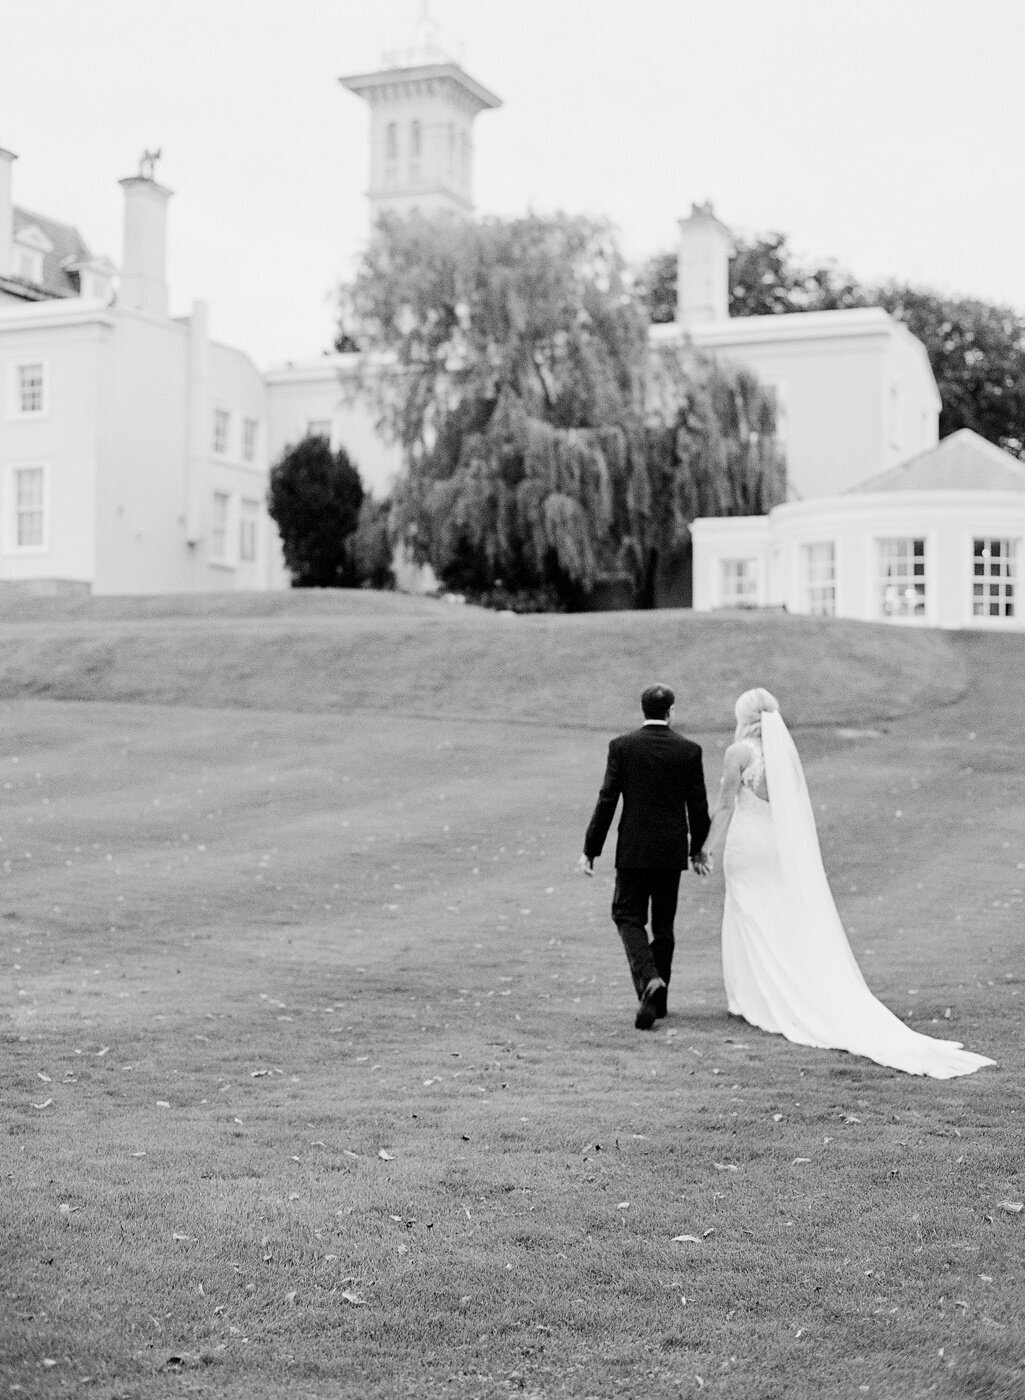 Jessie-Barksdale-Photography_K-Club-Ireland-Destination-Wedding-Photographer_0010